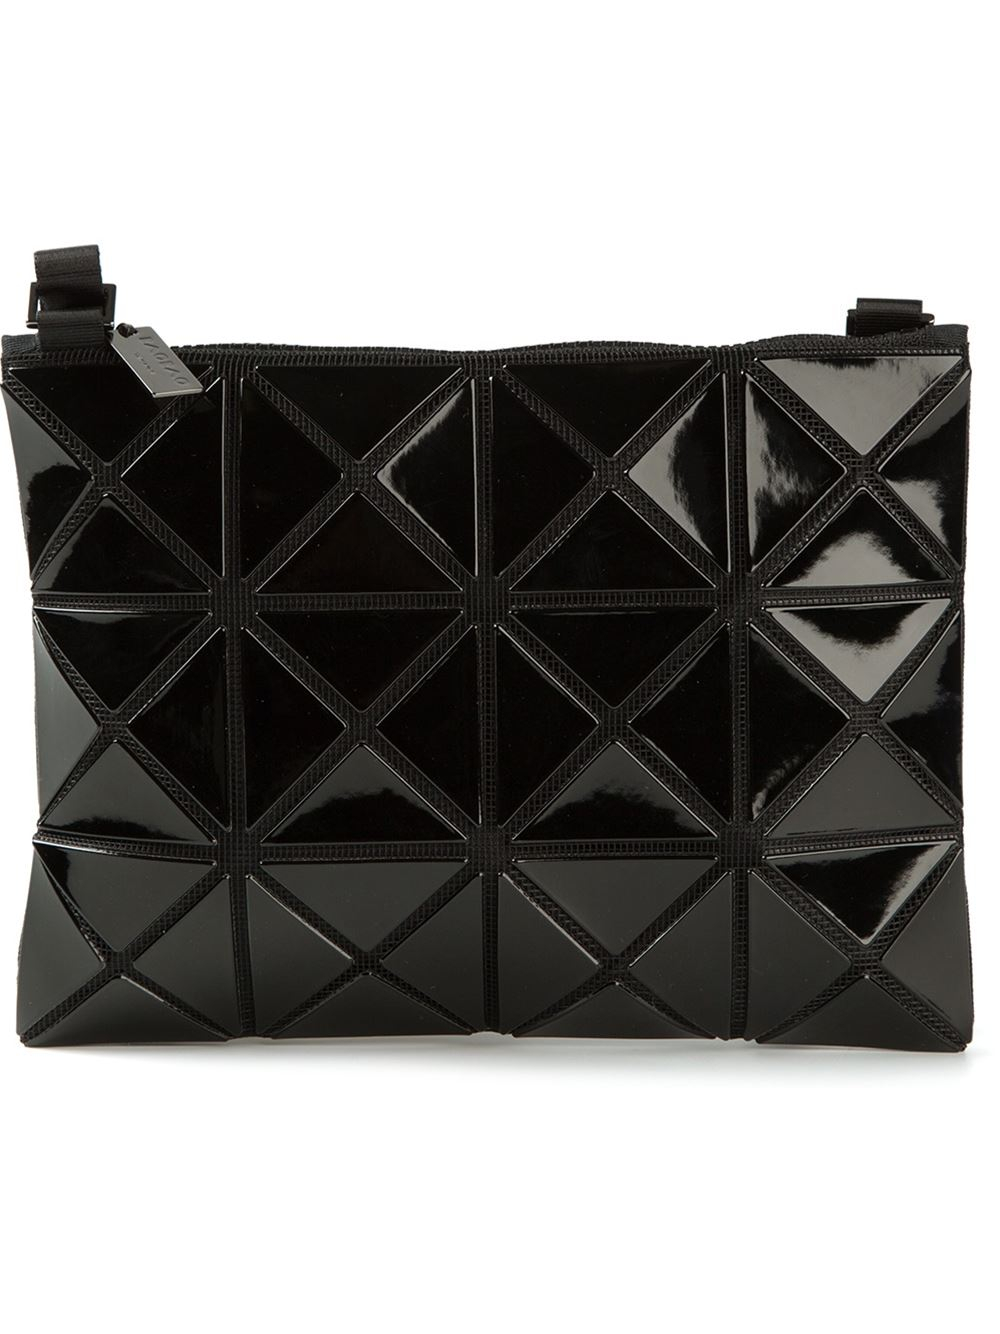 e7f509bbfc3c Gallery. Previously sold at  Farfetch · Women s Bao Bao Issey Miyake Prism  ...